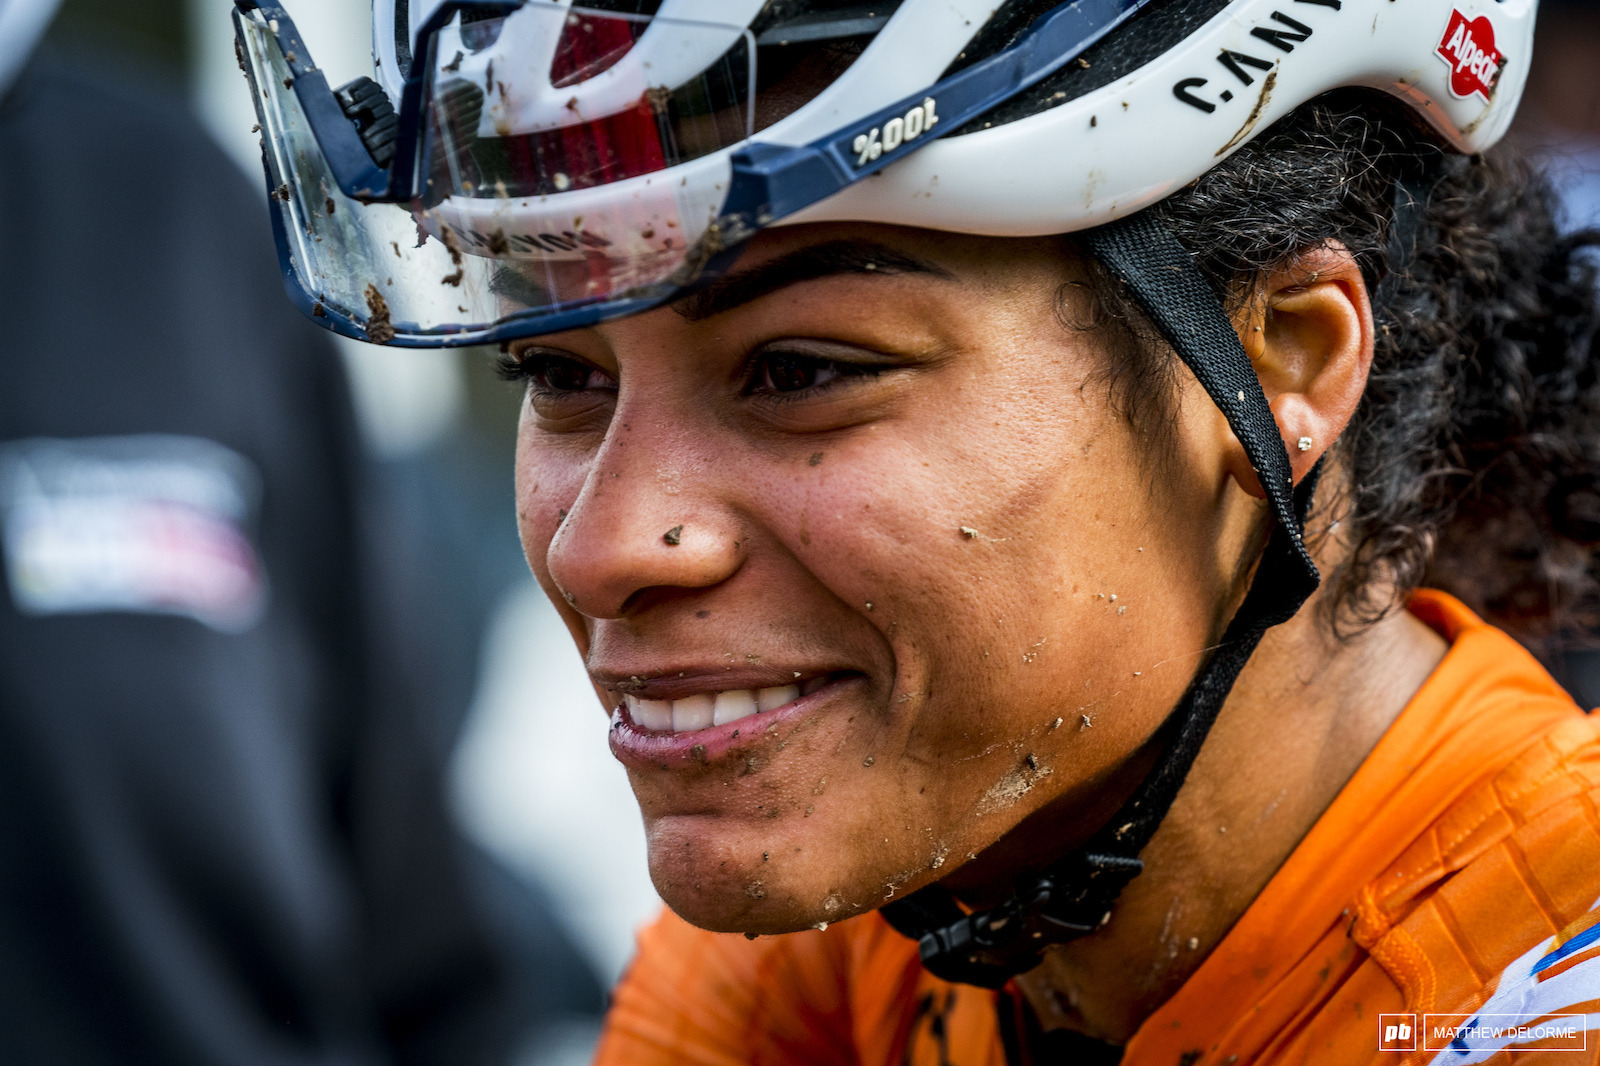 Ceylin Alvarado got in out of the scrum and into a place where she could ride her race and took third.